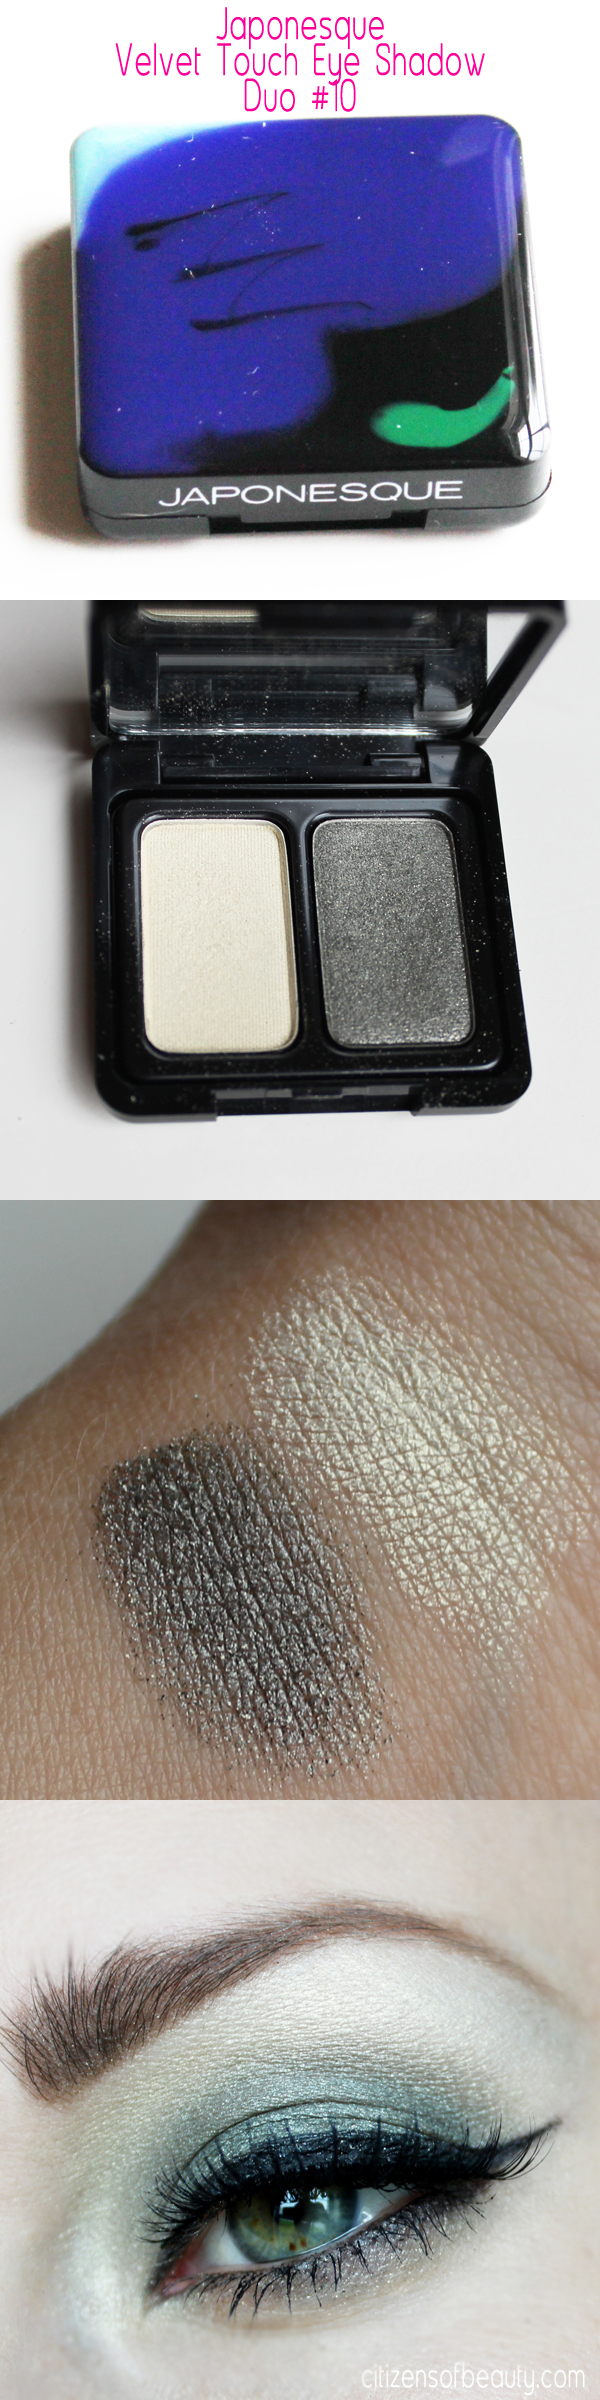 Japonesque Velvet Touch Eyeshadow Duo Review Japonesque Velvet Touch Eye Shadow and Makeup Brush Review